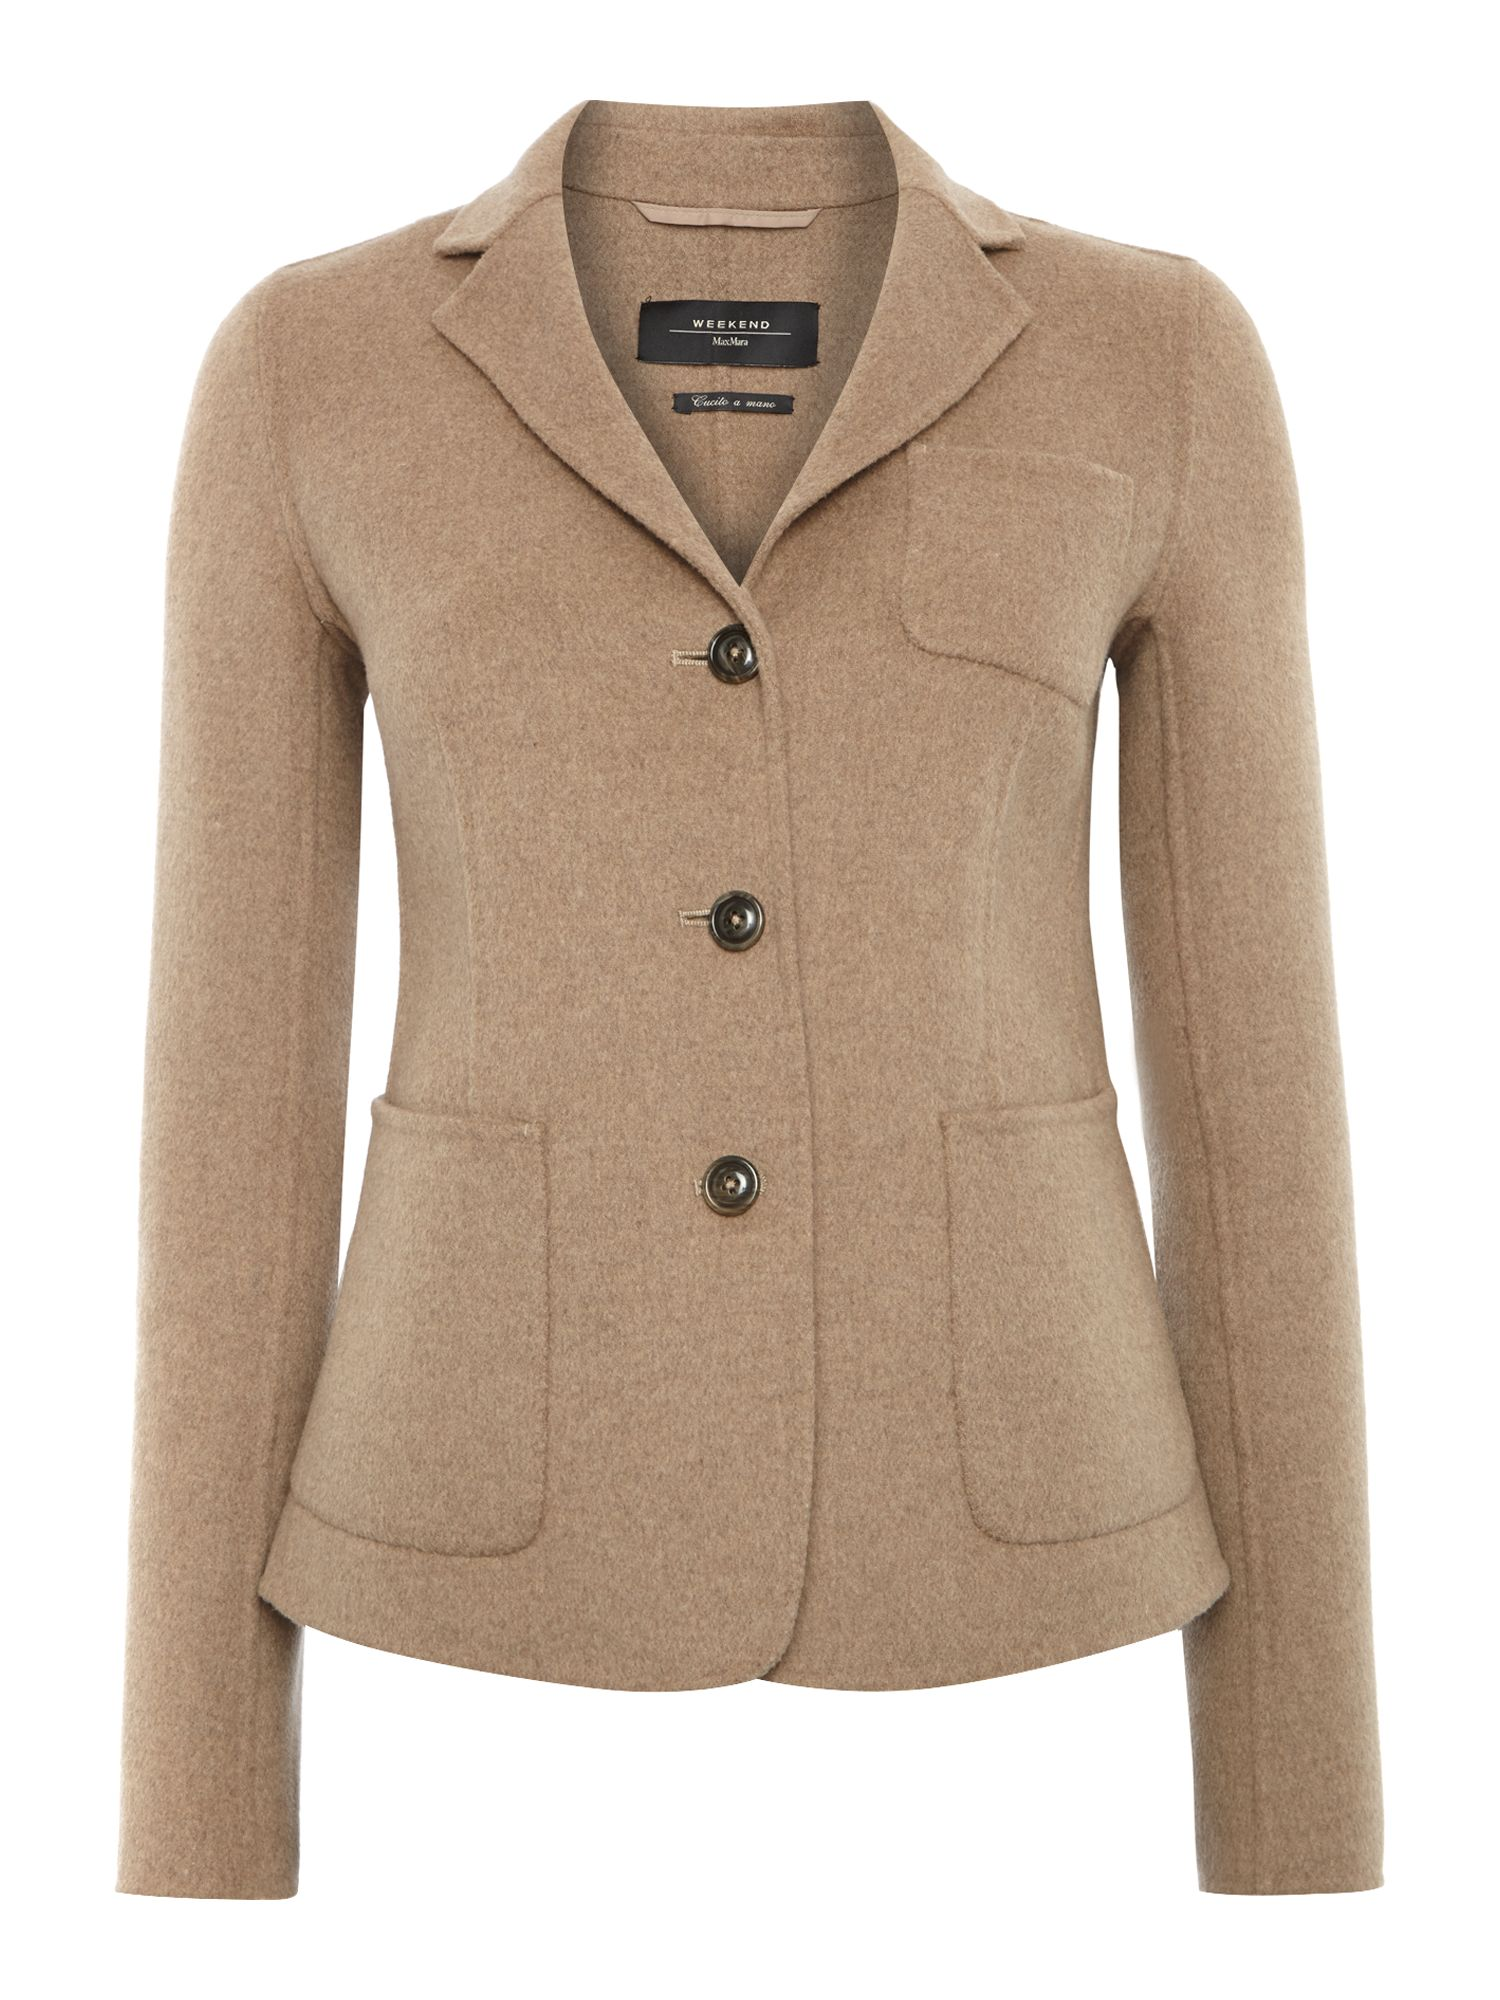 Alca double faced wool blazer